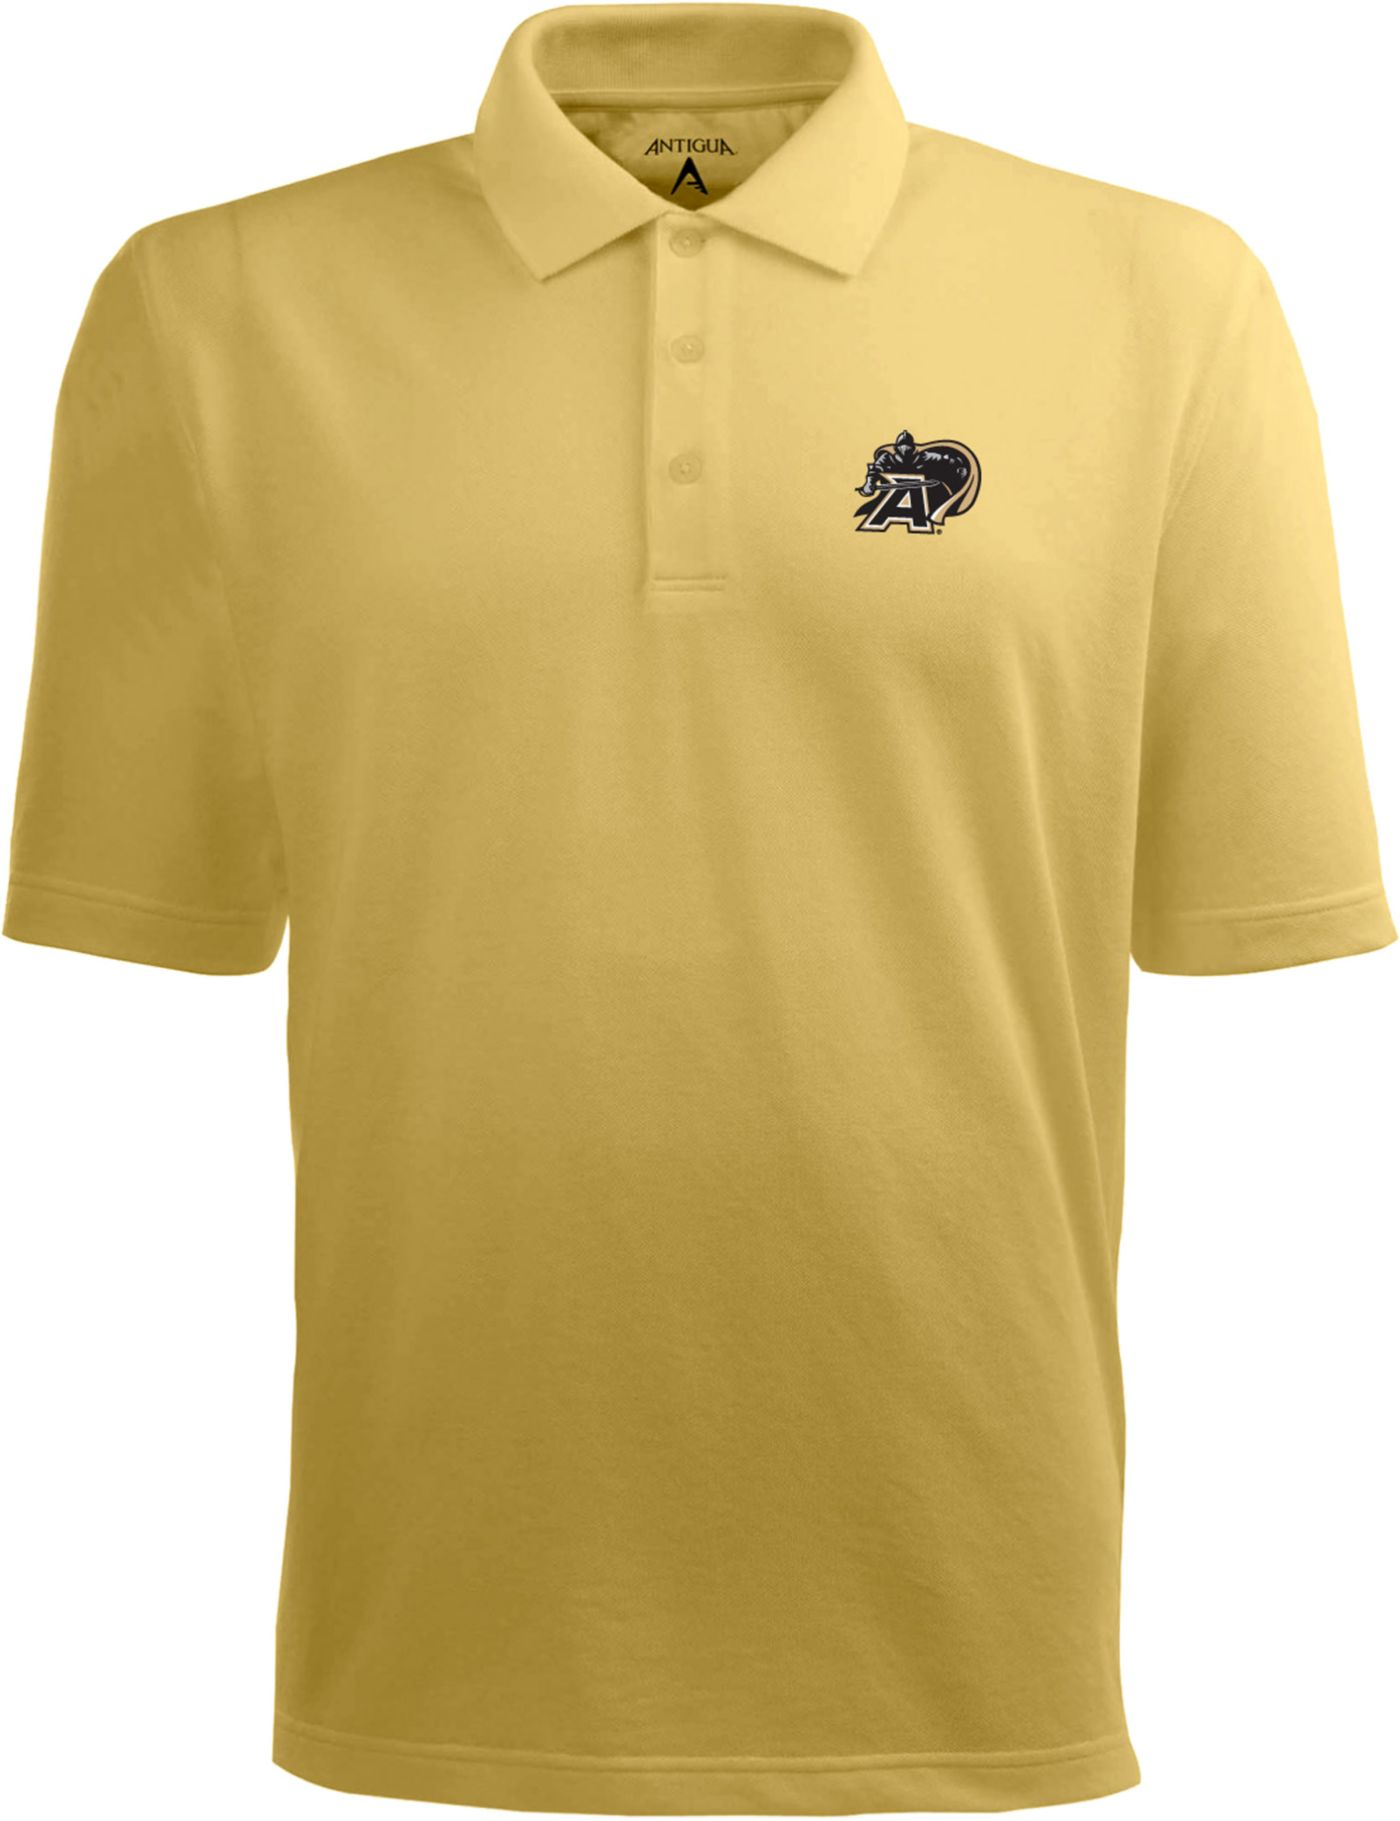 Antigua Men's Army Black Knights Gold Xtra-Lite Polo